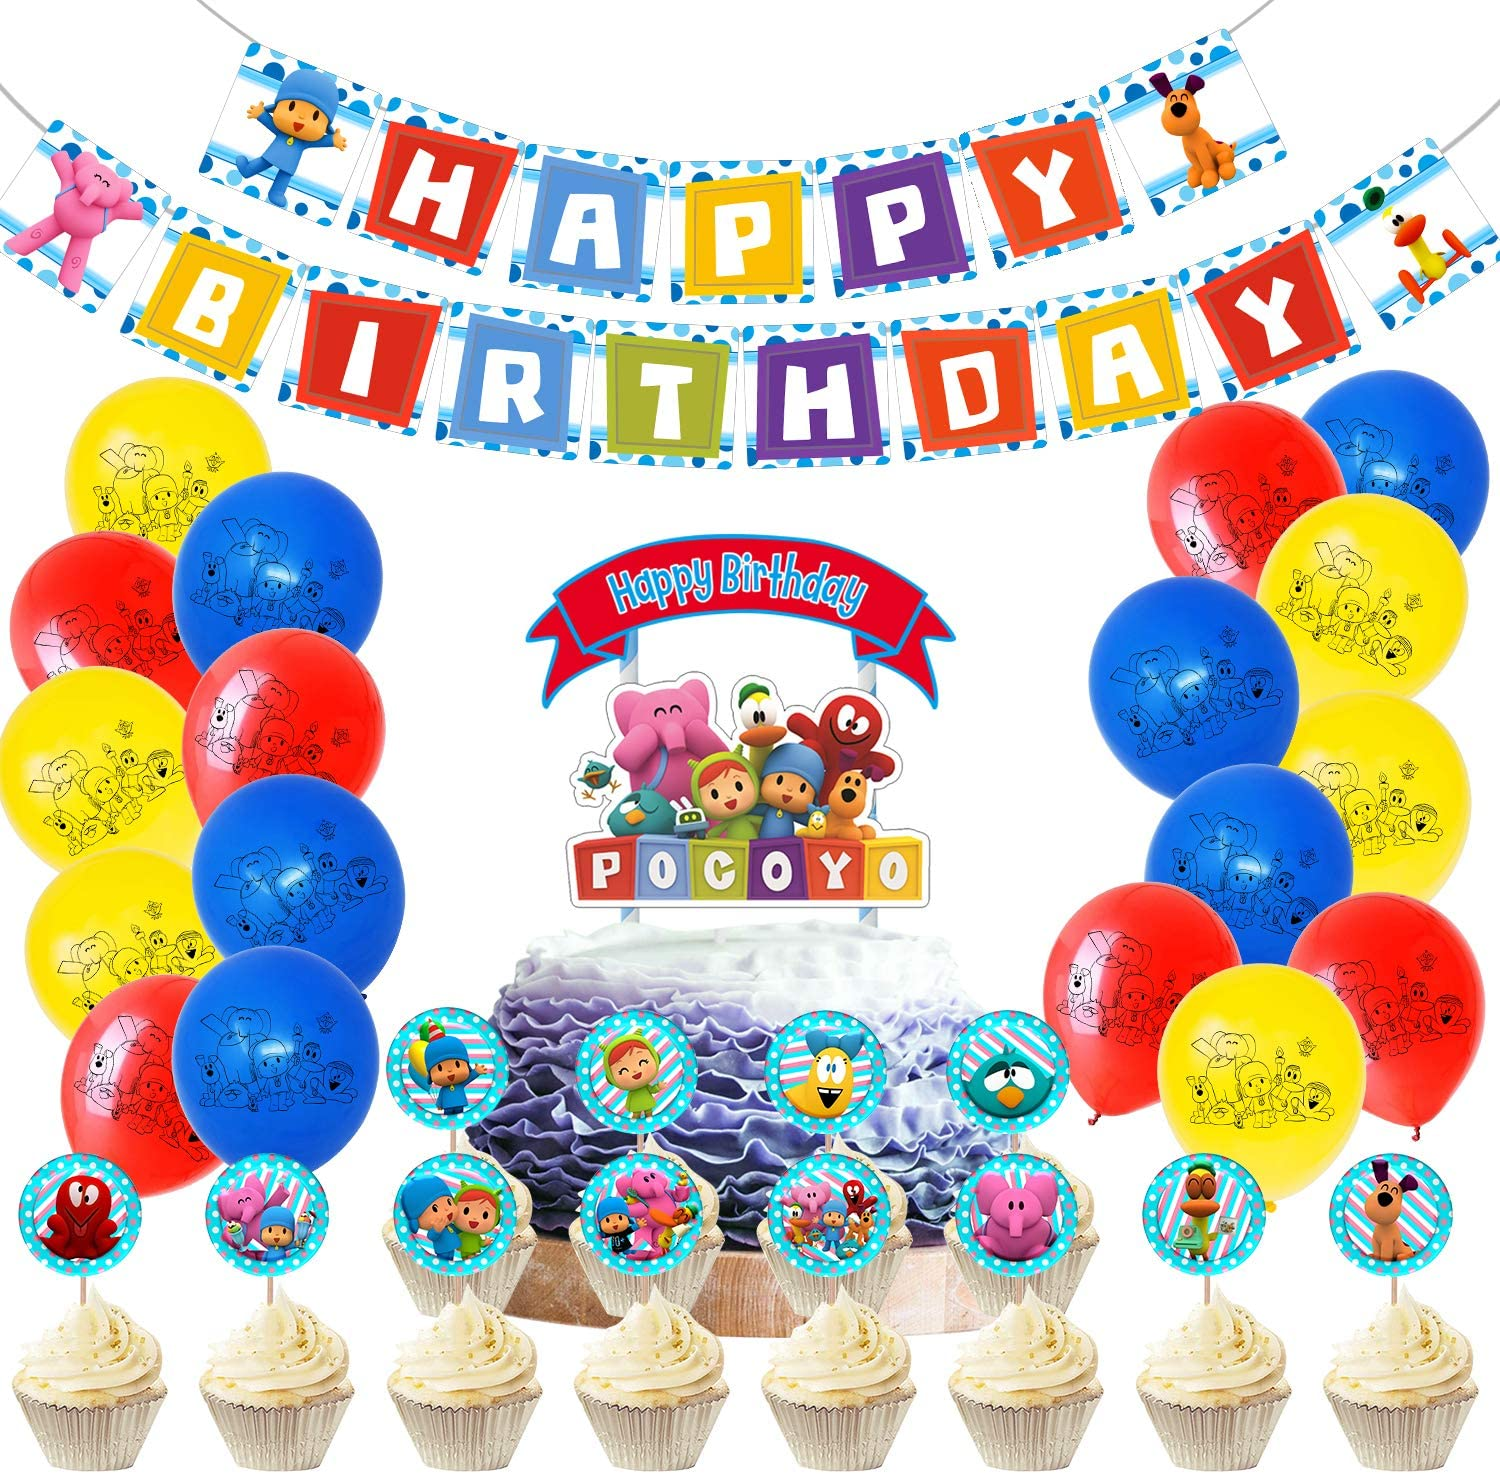 Strange Amazon Com Pocoyo Birthday Party Supplies Includes Banner Cake Funny Birthday Cards Online Elaedamsfinfo